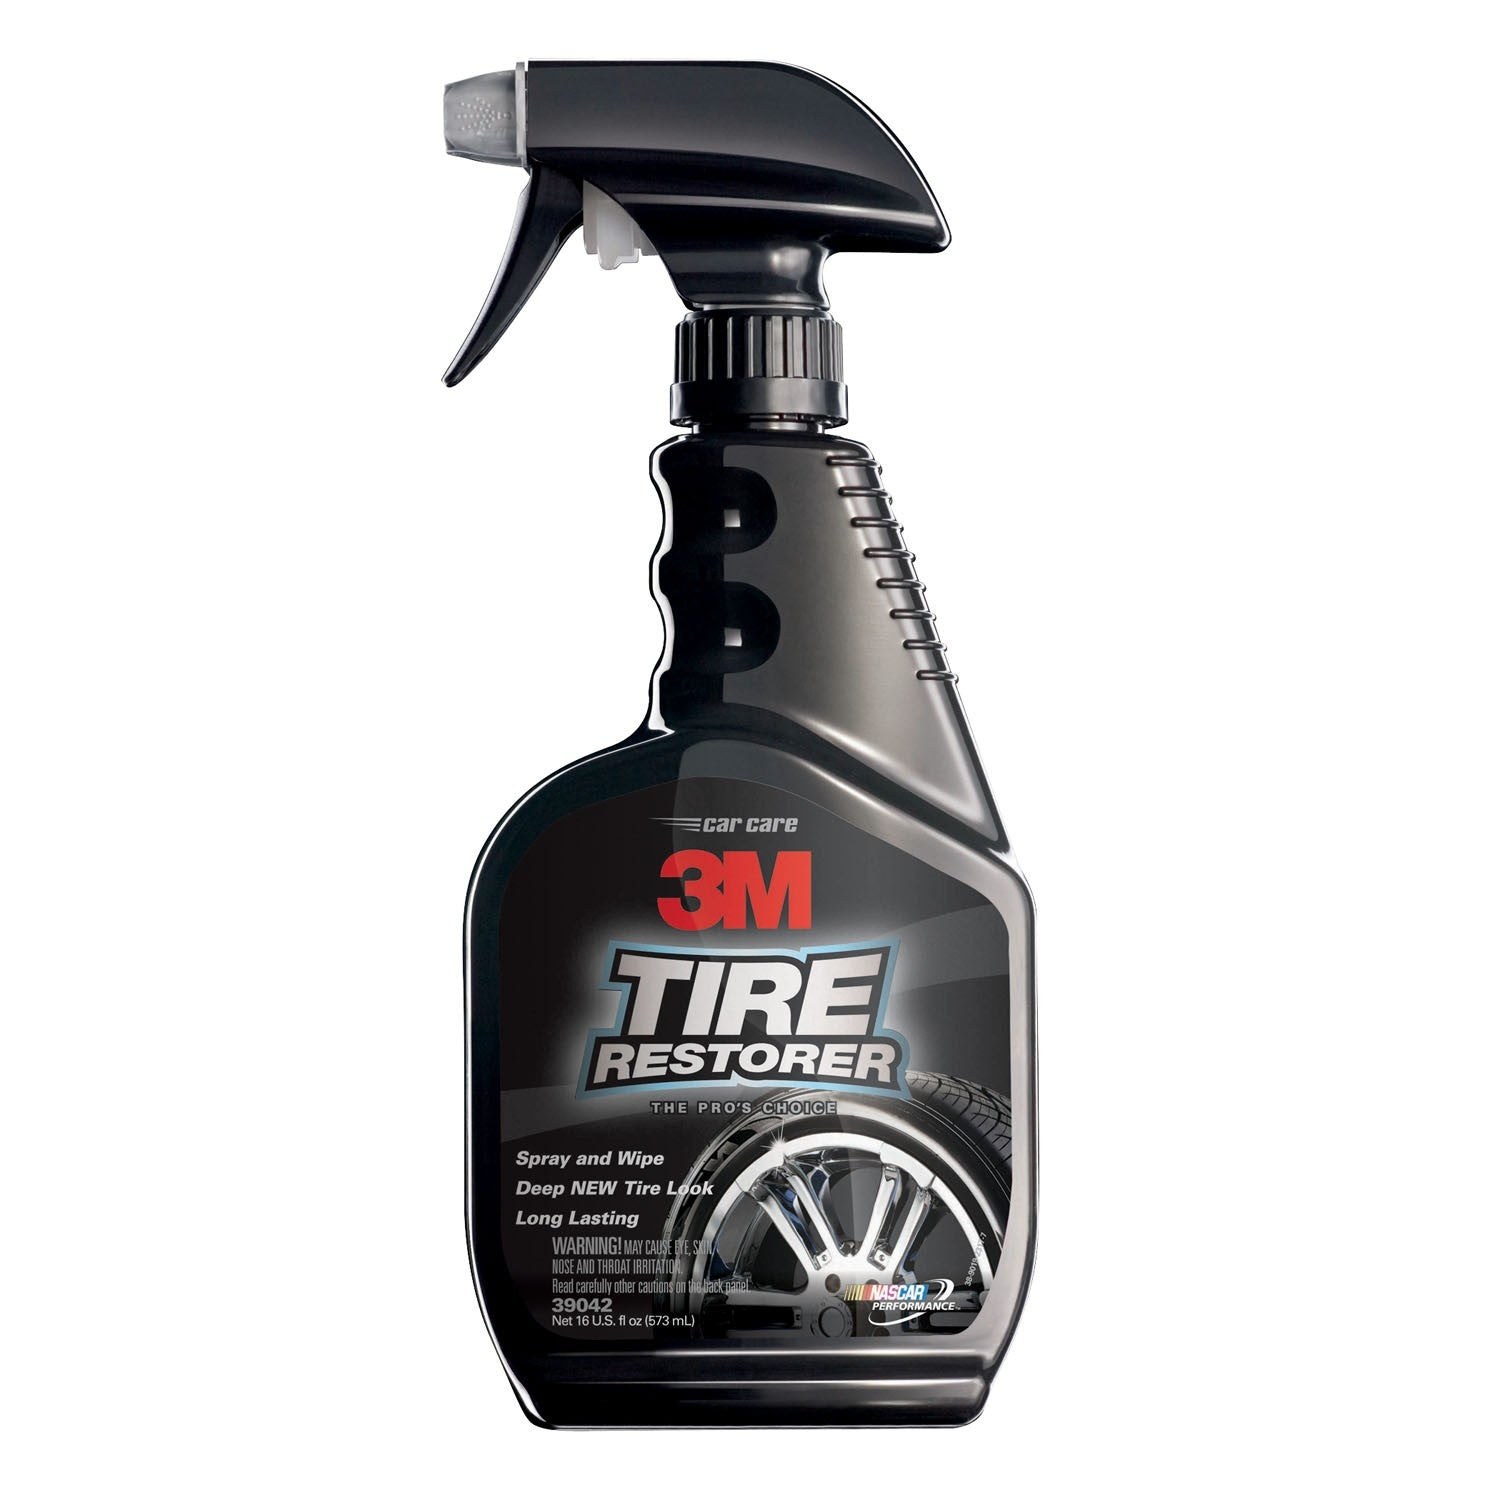 3M Tire Restorer, 16oz./573ml